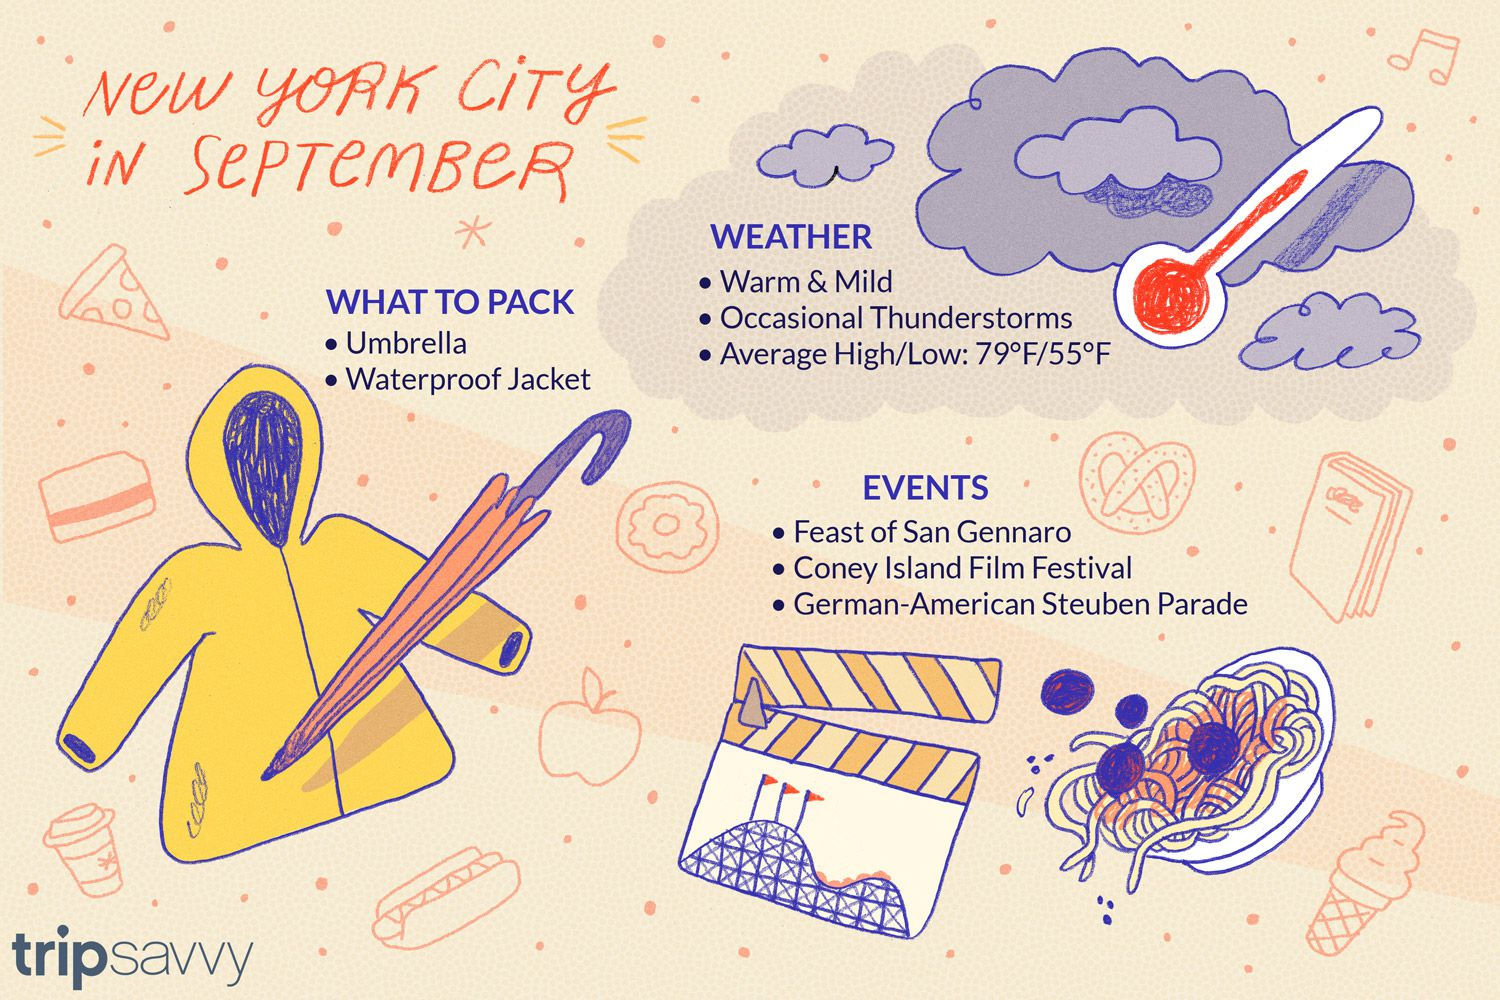 September clipart september weather. New york city and